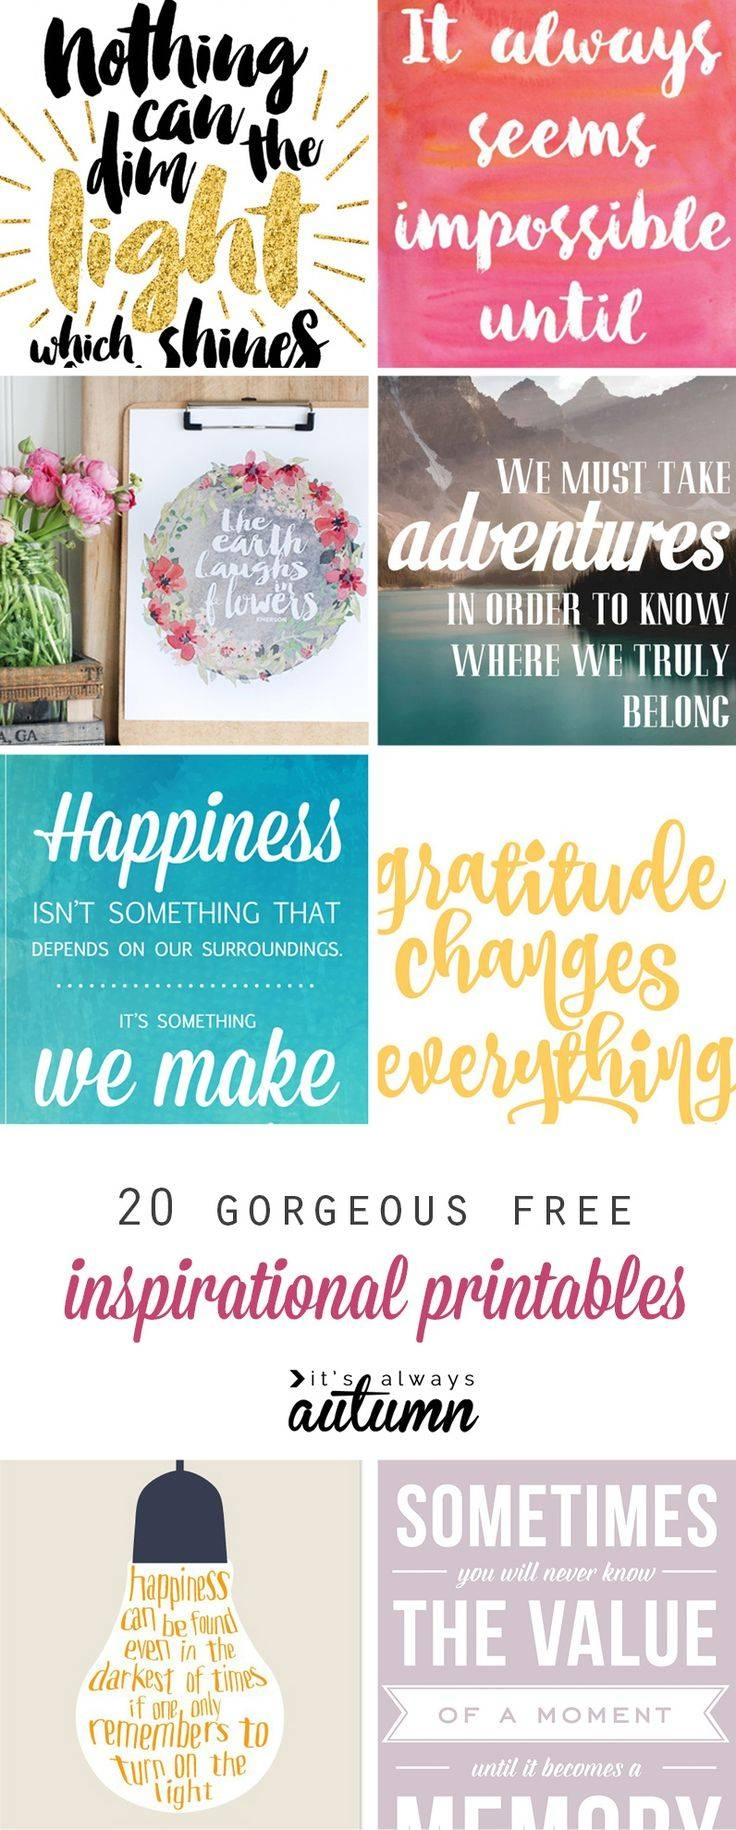 Best 25+ Office Wall Art Ideas On Pinterest | Office Wall Design Pertaining To Current Inspirational Wall Art For Office (View 1 of 20)